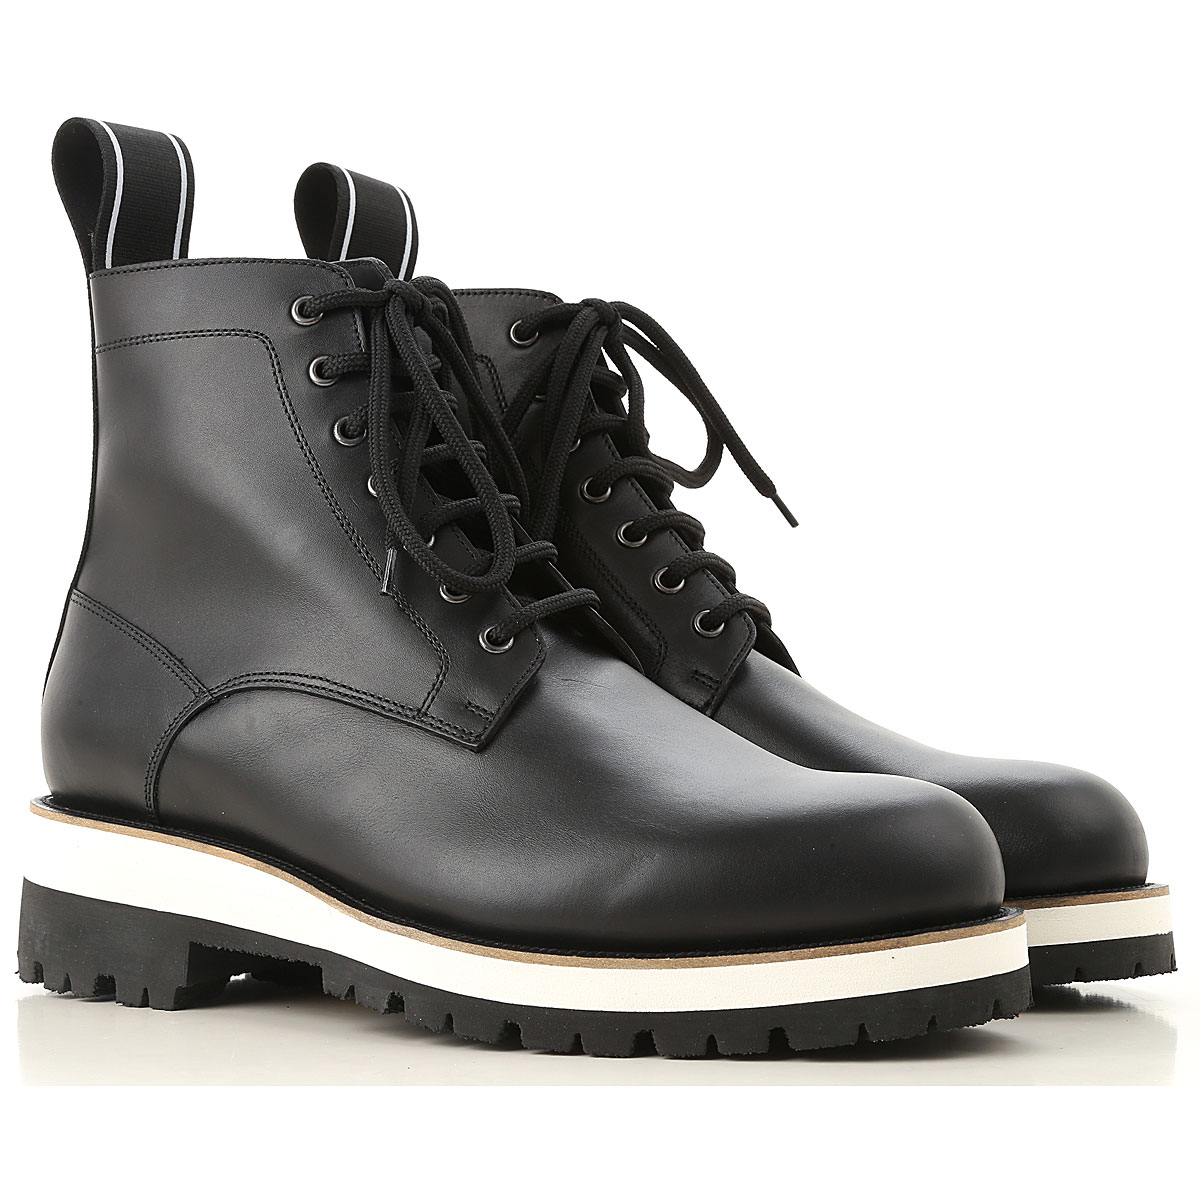 1014ef9156cae5 Mens Shoes Dsquared2, Style code: abm0023-29100001-2124